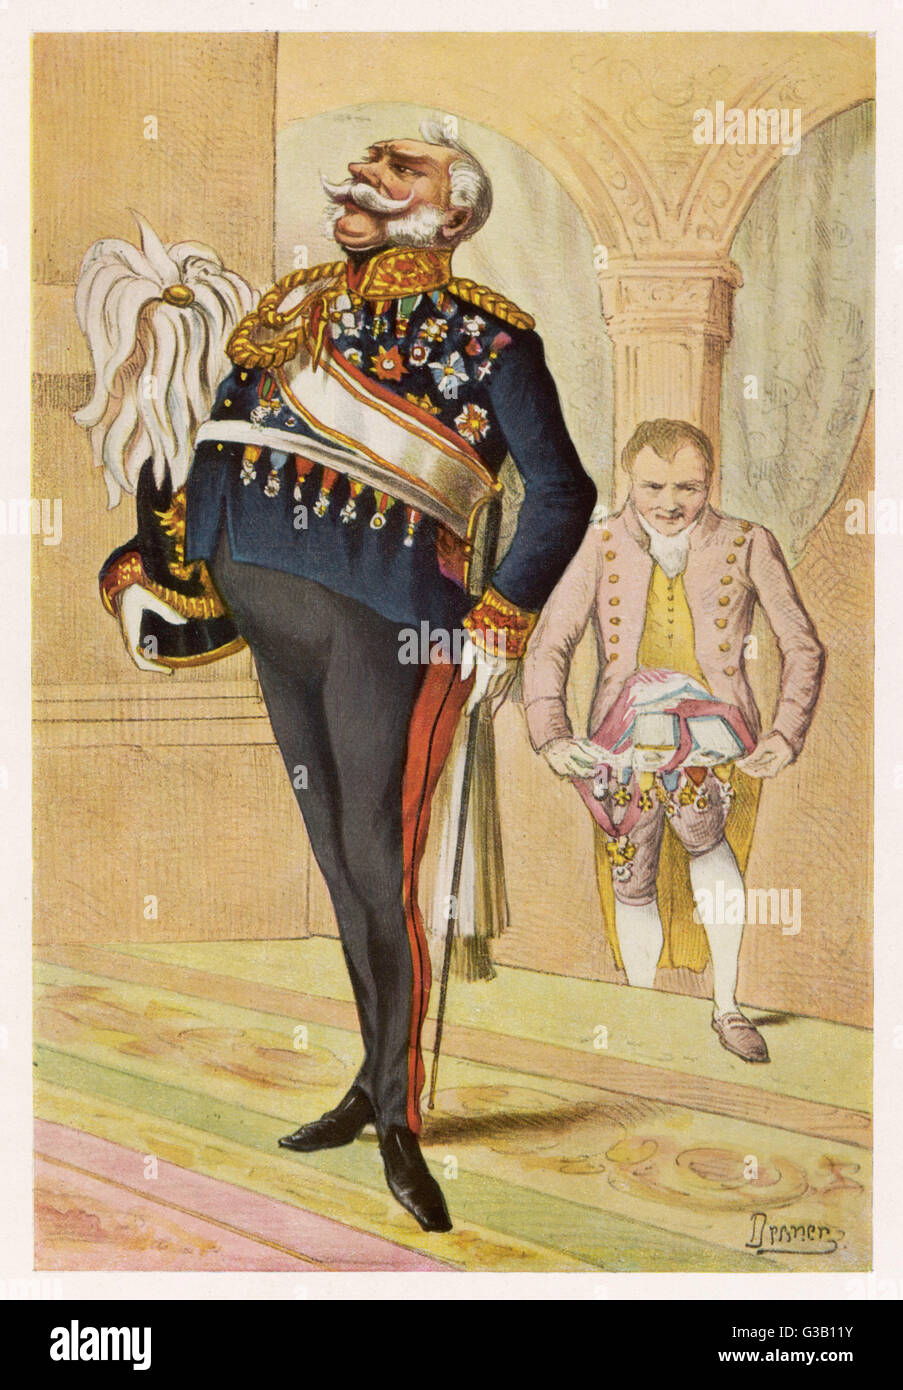 Prussian General:  a satirical view        Date: 1862 - Stock Image